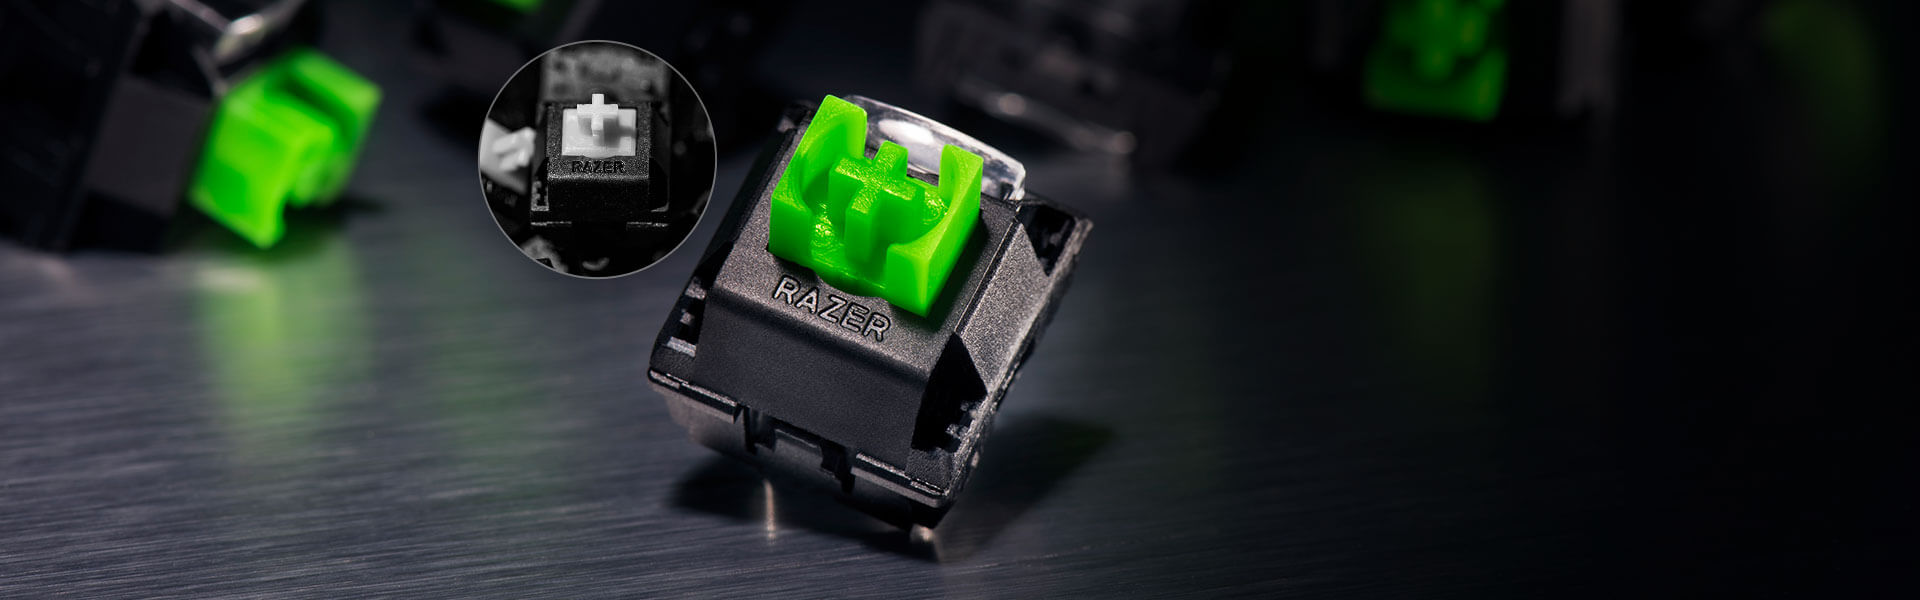 TACTILE AND CLICKY - Mechanical keyboards are popular among gamers due to their tactile and clicky feel—a signature feature of the Razer™ Green Mechanical Switch. Each switch is also equipped with side walls for greater stability and protection against dust and liquids, and is durable up to 80 million keystrokes, making the Razer BlackWidow reliable for everyday gaming.